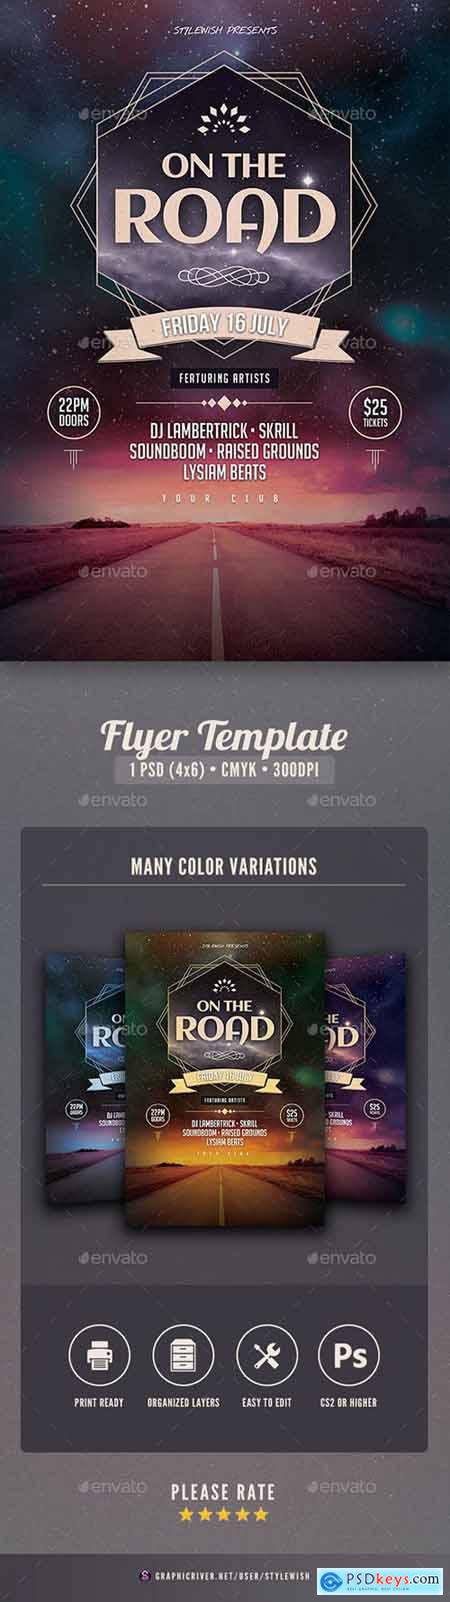 Graphicriver On The Road Flyer